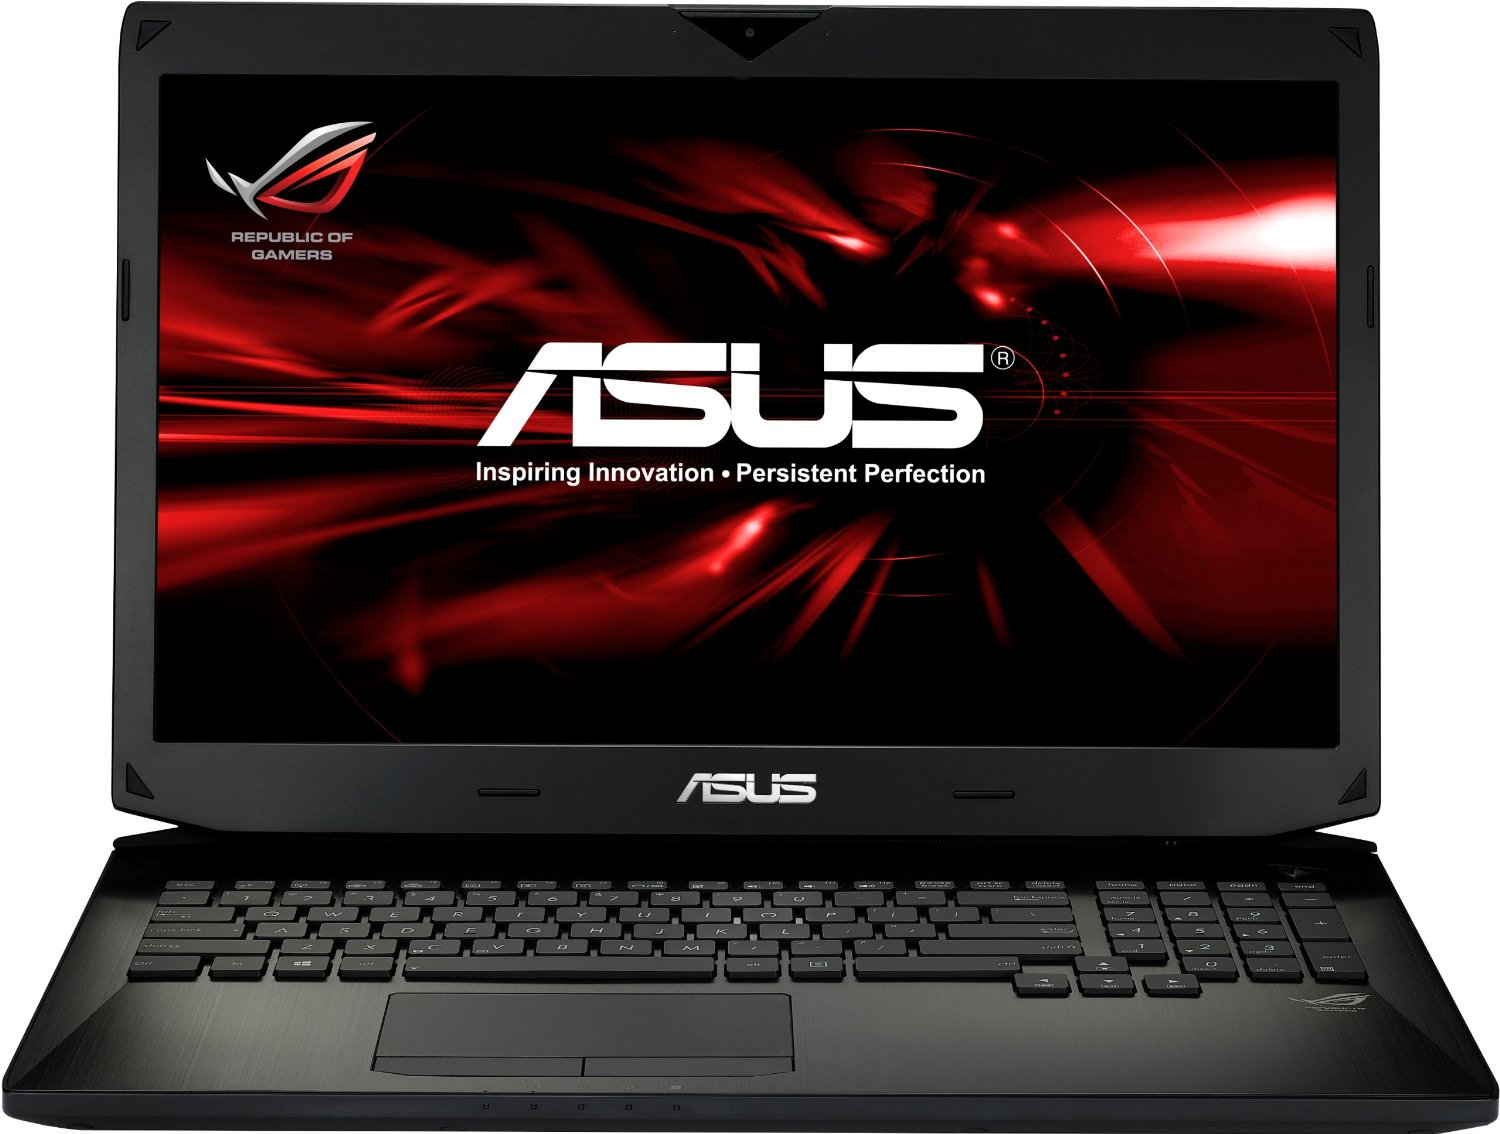 ASUS G750JX DOWNLOAD DRIVER